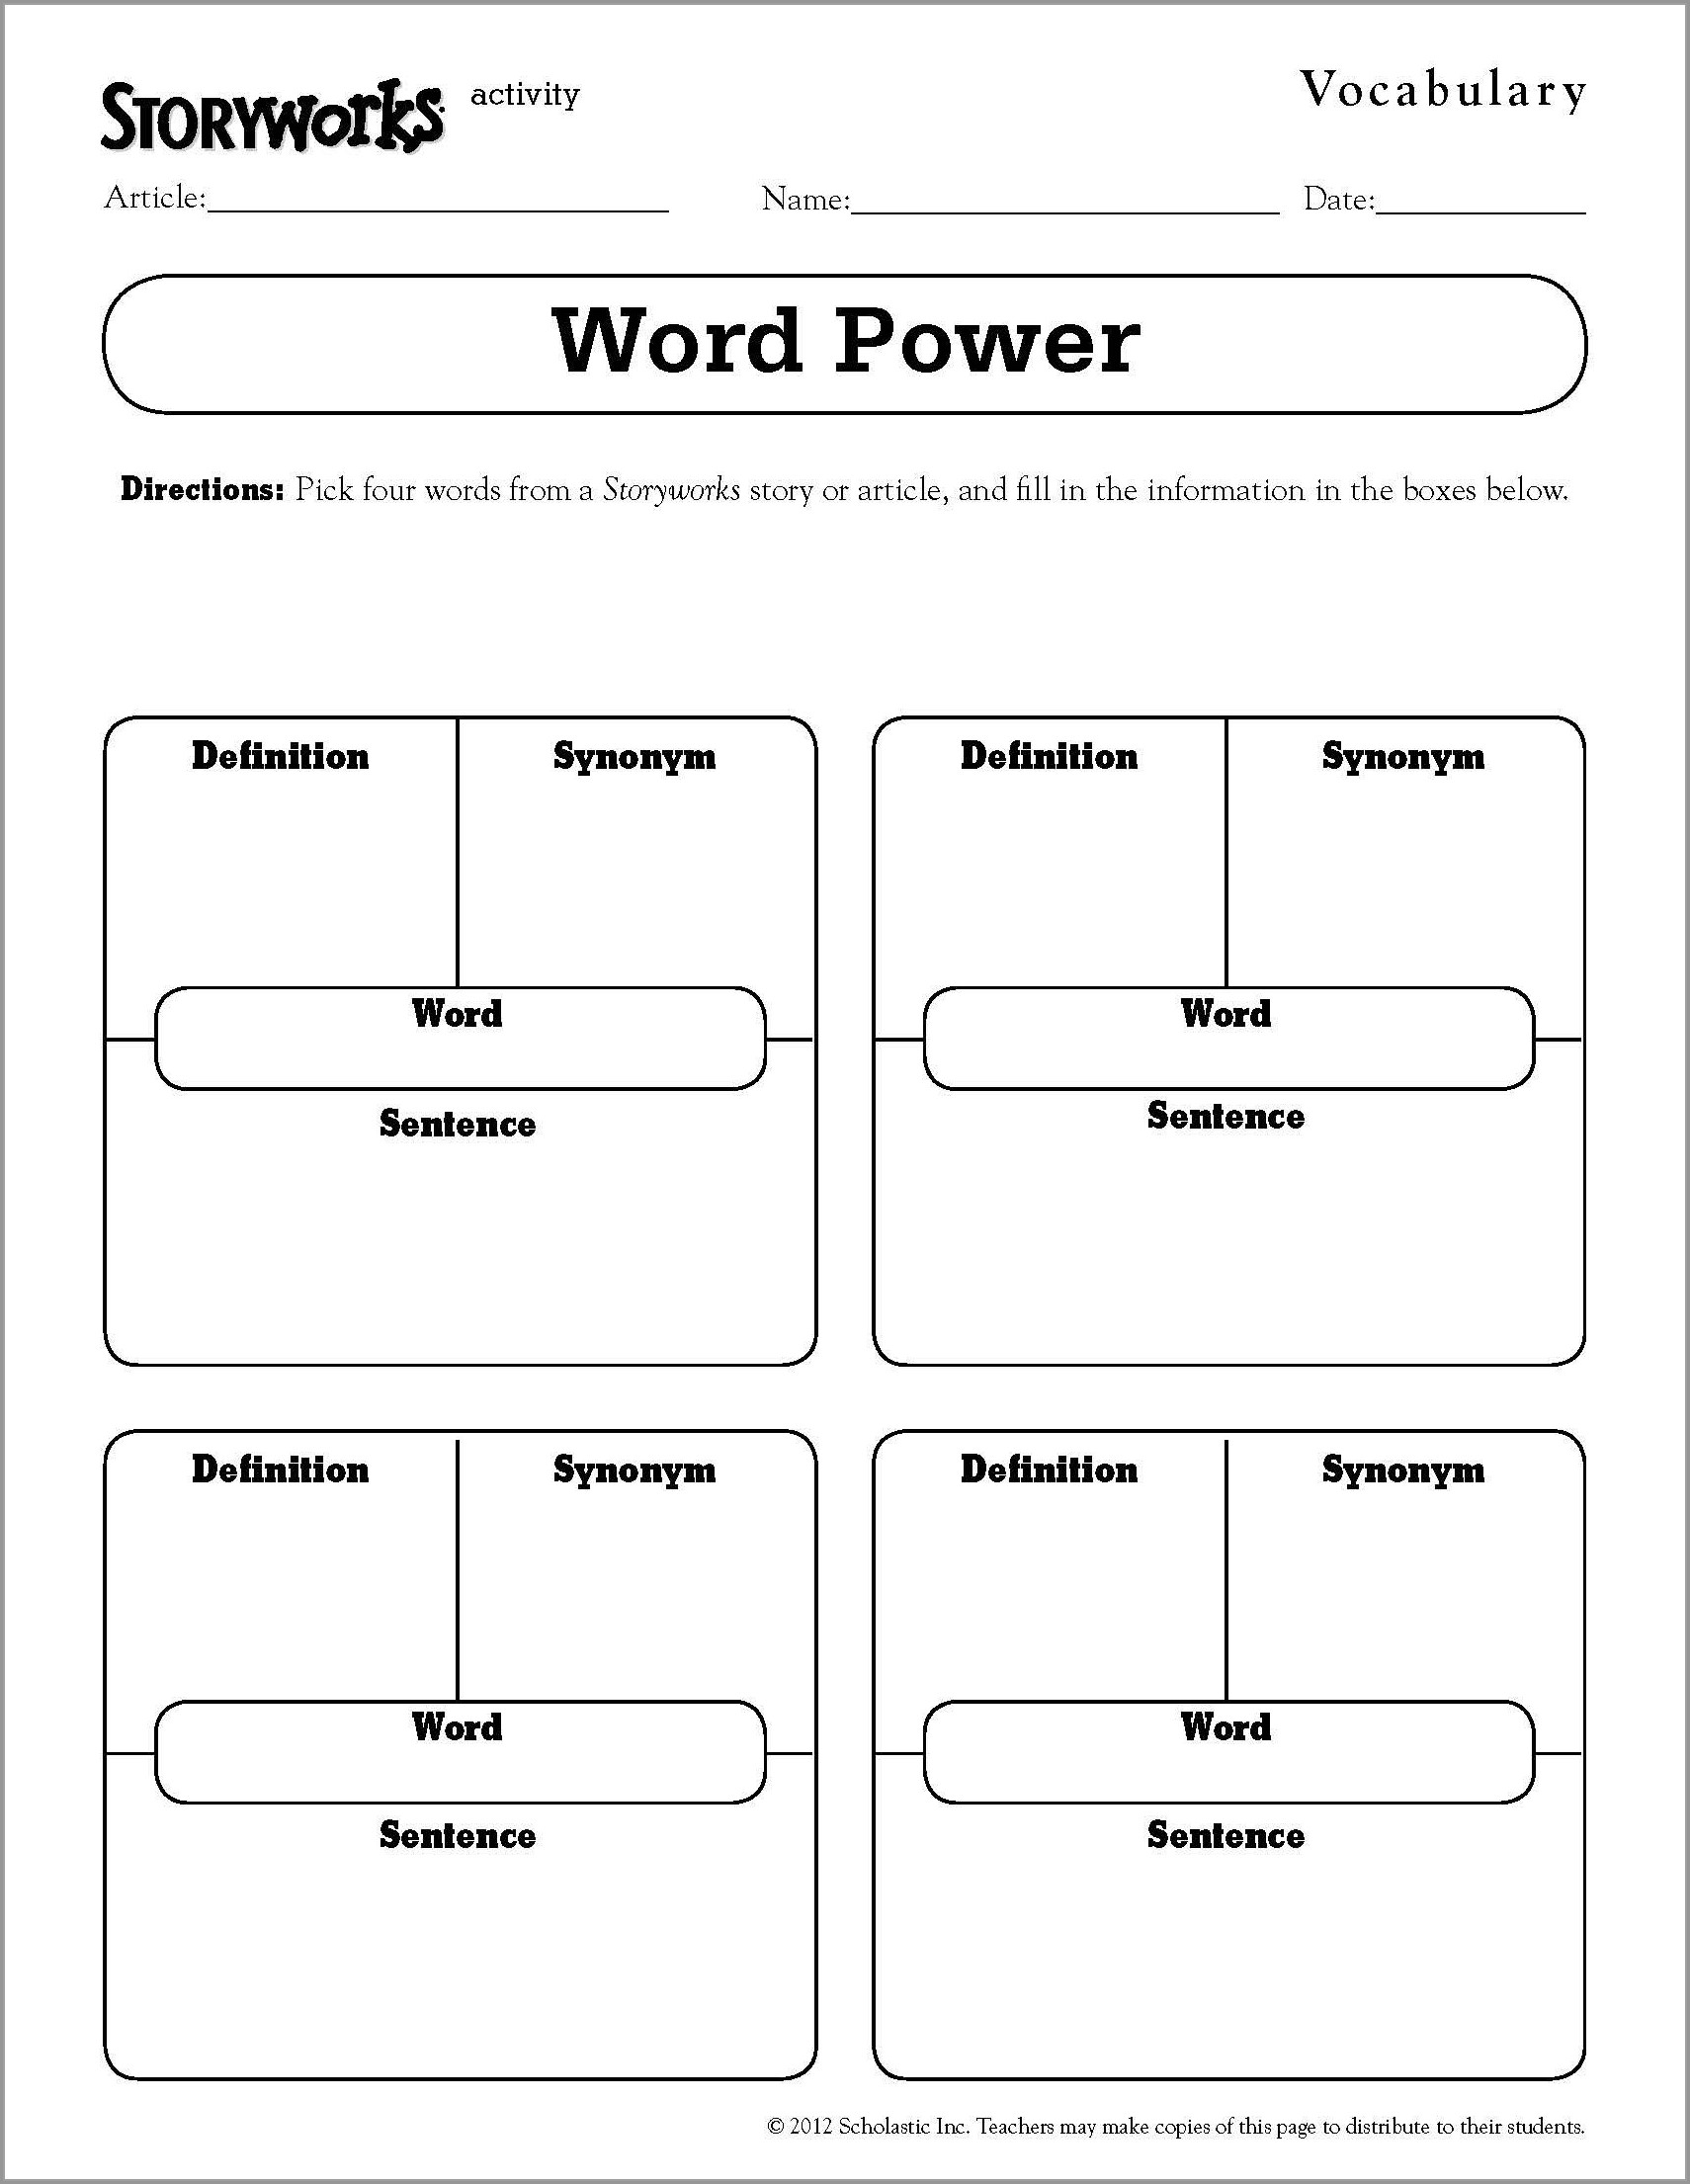 Science Vocabulary Worksheet Answers